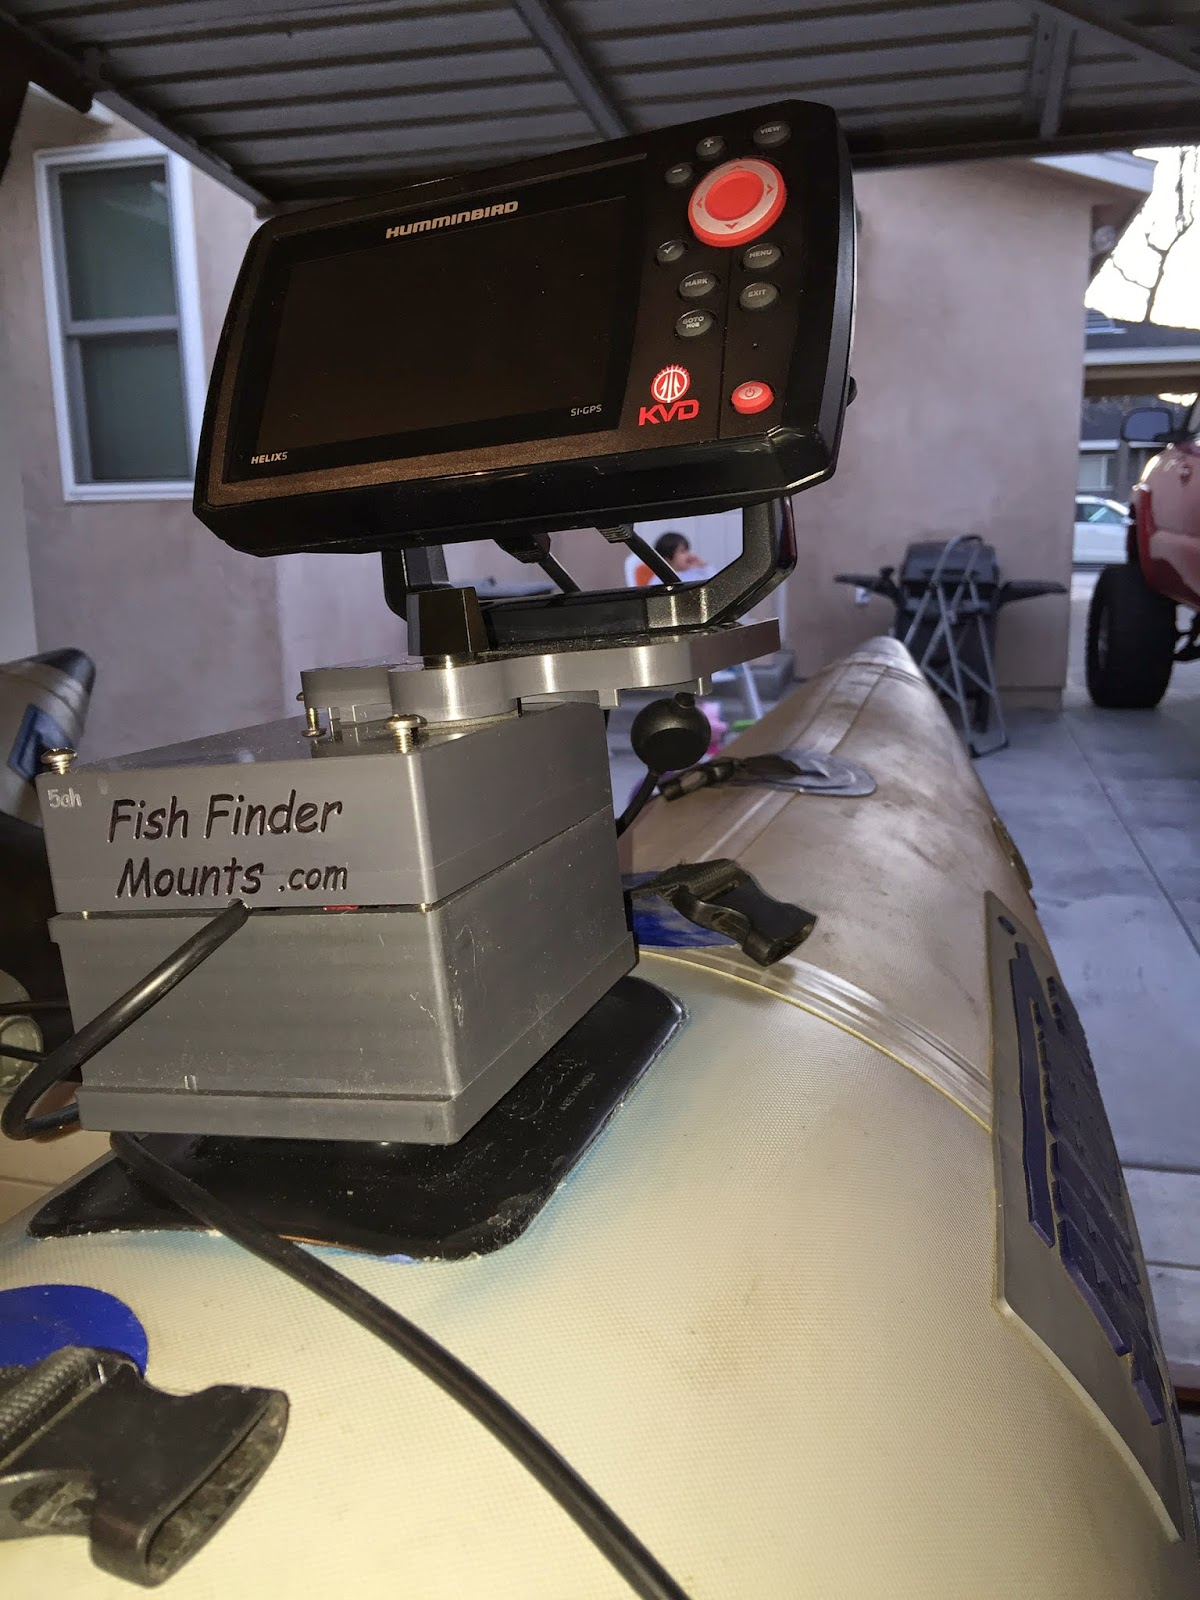 fish finder and transducer mounting solutions, Fish Finder